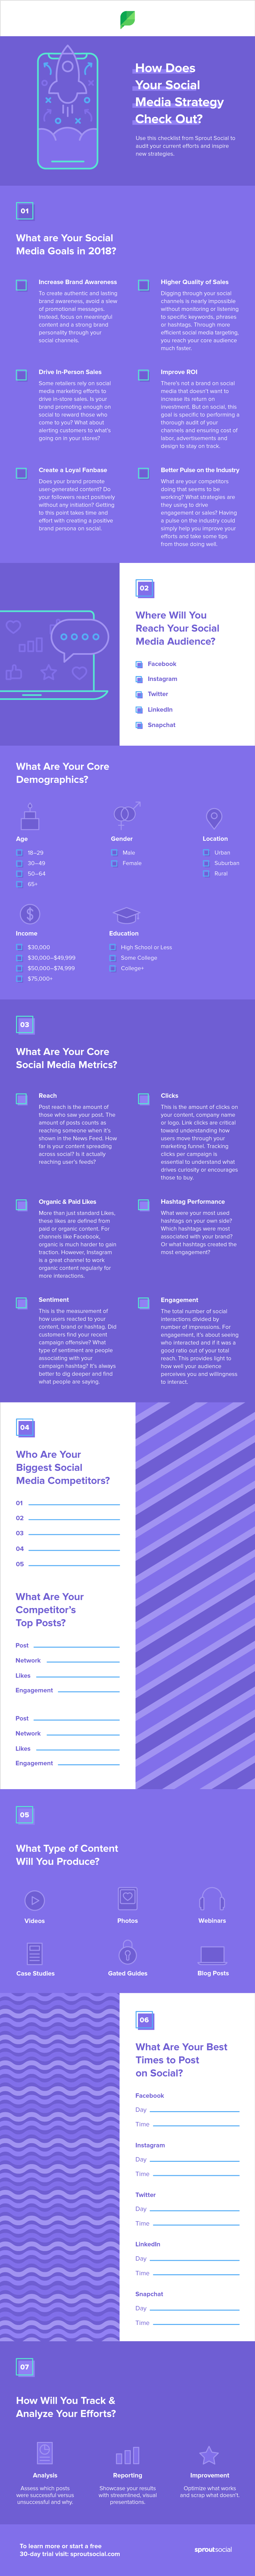 7 Steps in Creating a Winning Social Media Marketing Strategy in 2018 - #infographic